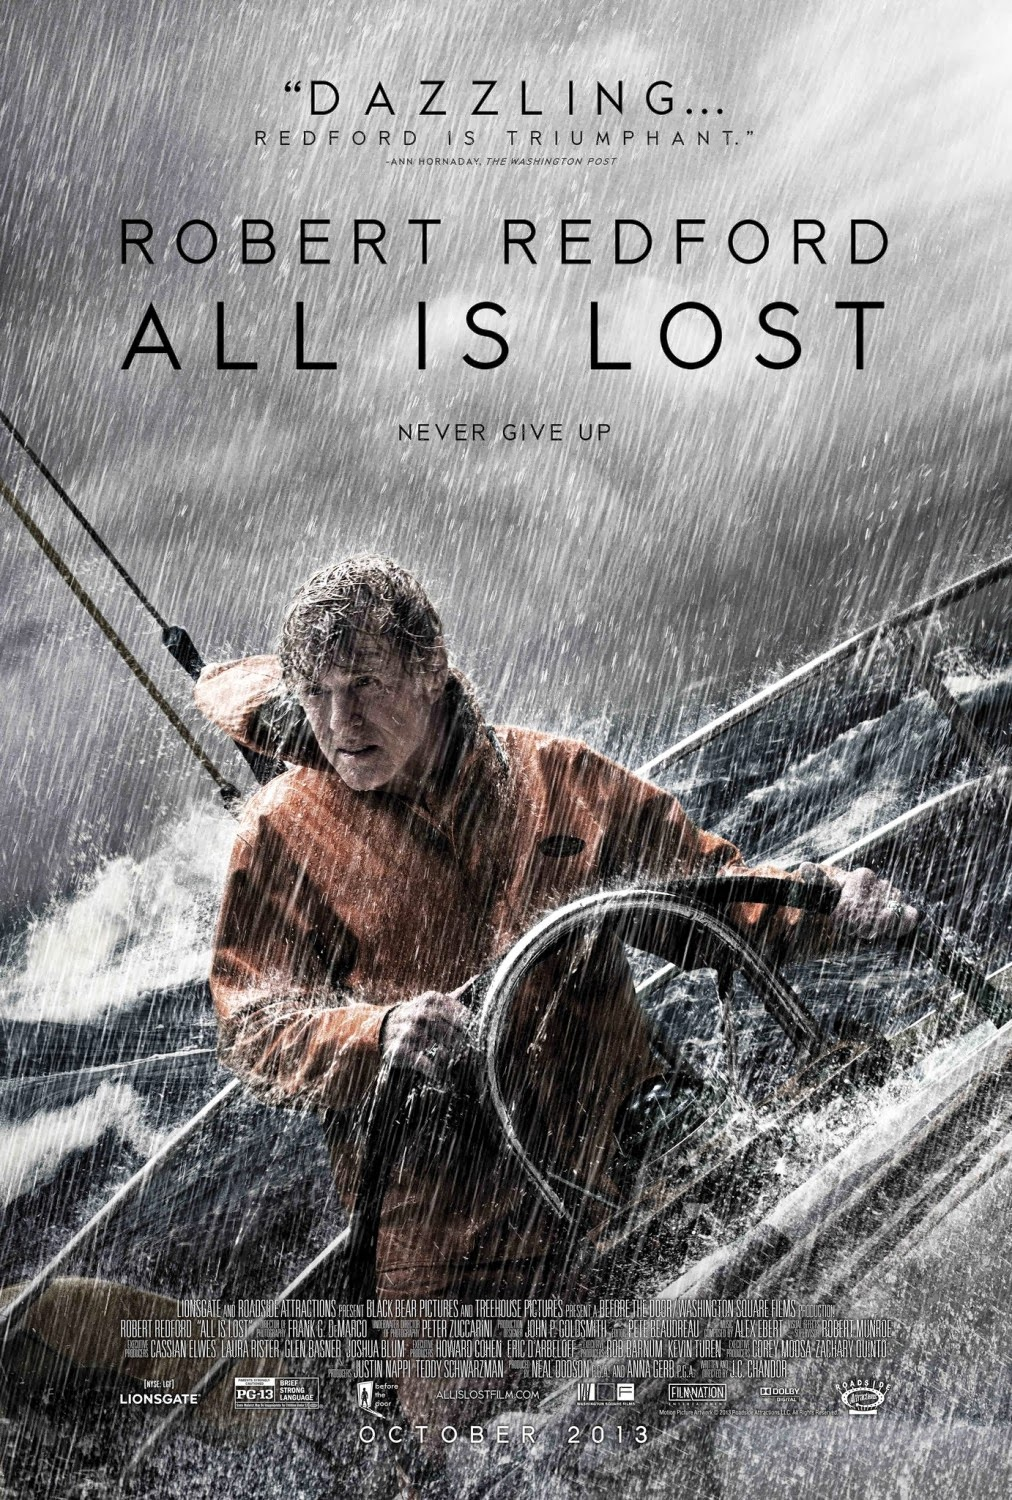 BRIAN THE MOVIE GUY: ALL IS LOST (B)